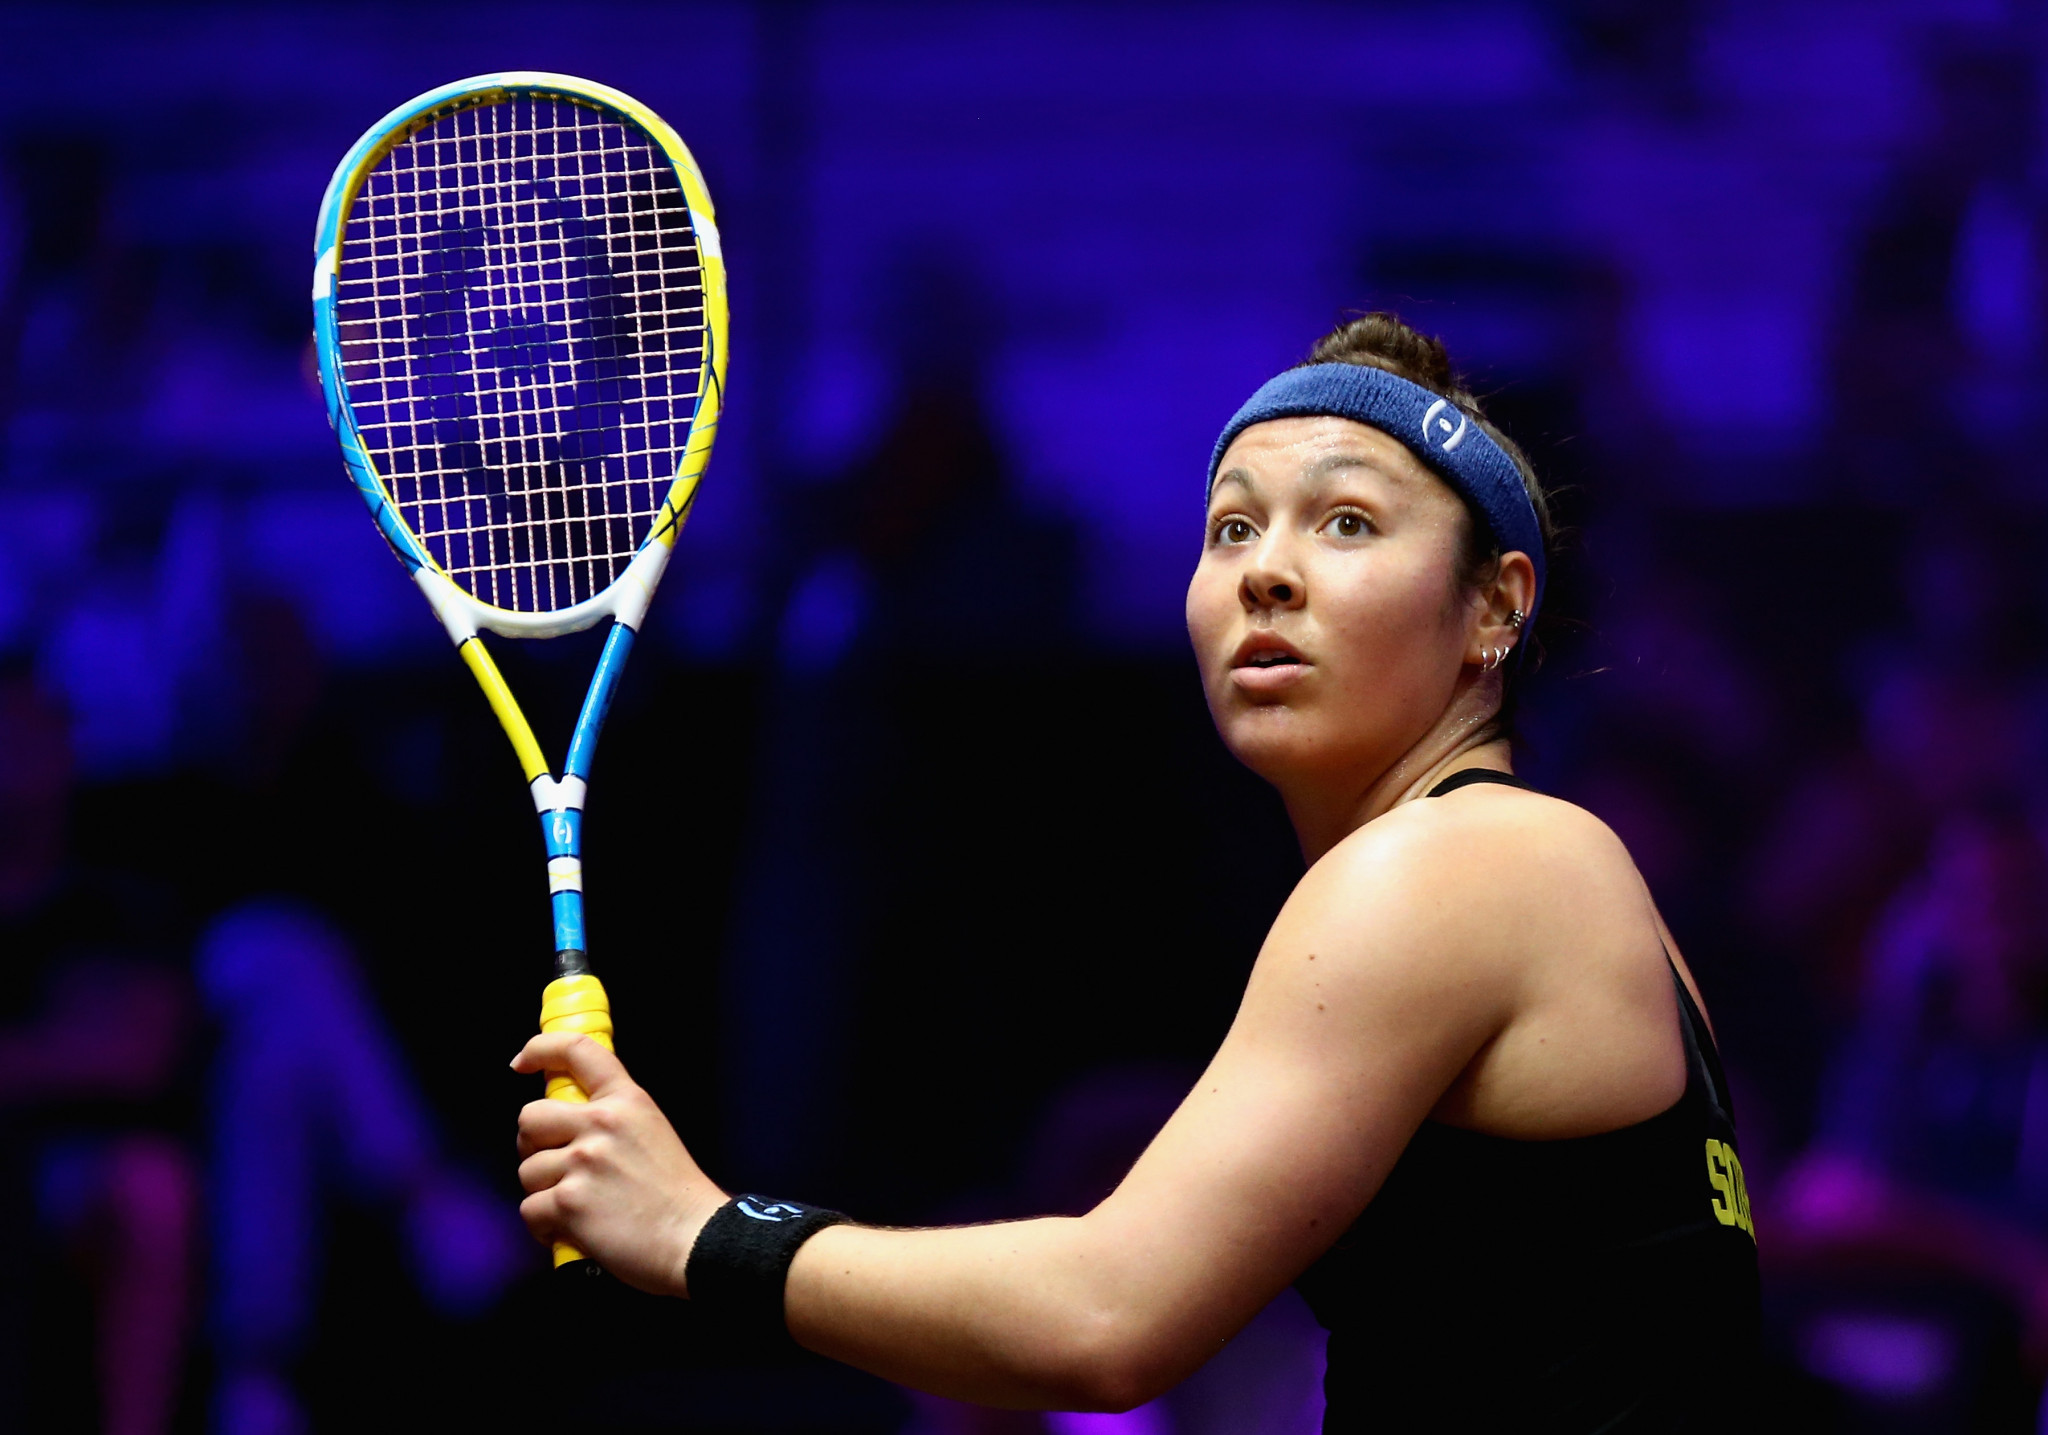 Defending champion El Tayeb eliminated from PSA US Open